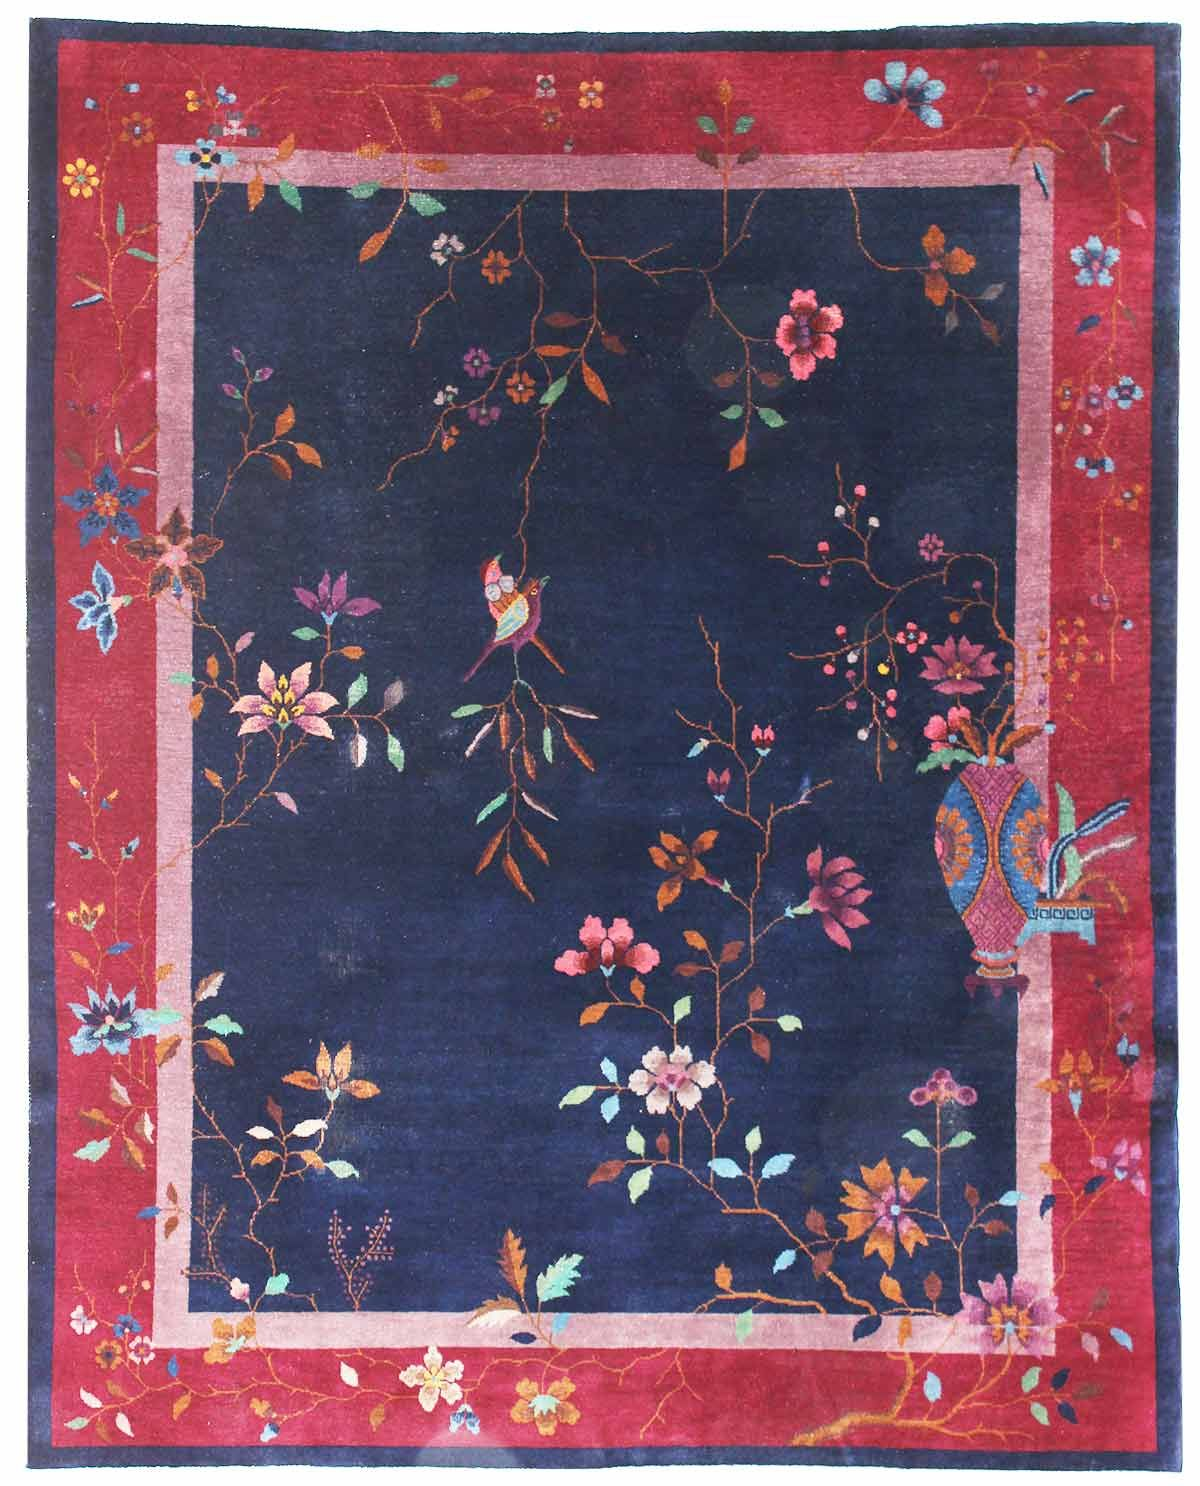 Antique Chinese Rugs Gallery Antique Art Deco Rug Hand Knotted In China Size 7 Feet 10 Inch Es X 9 Feet 3 Inch Es Art Rugs Antique Art Deco